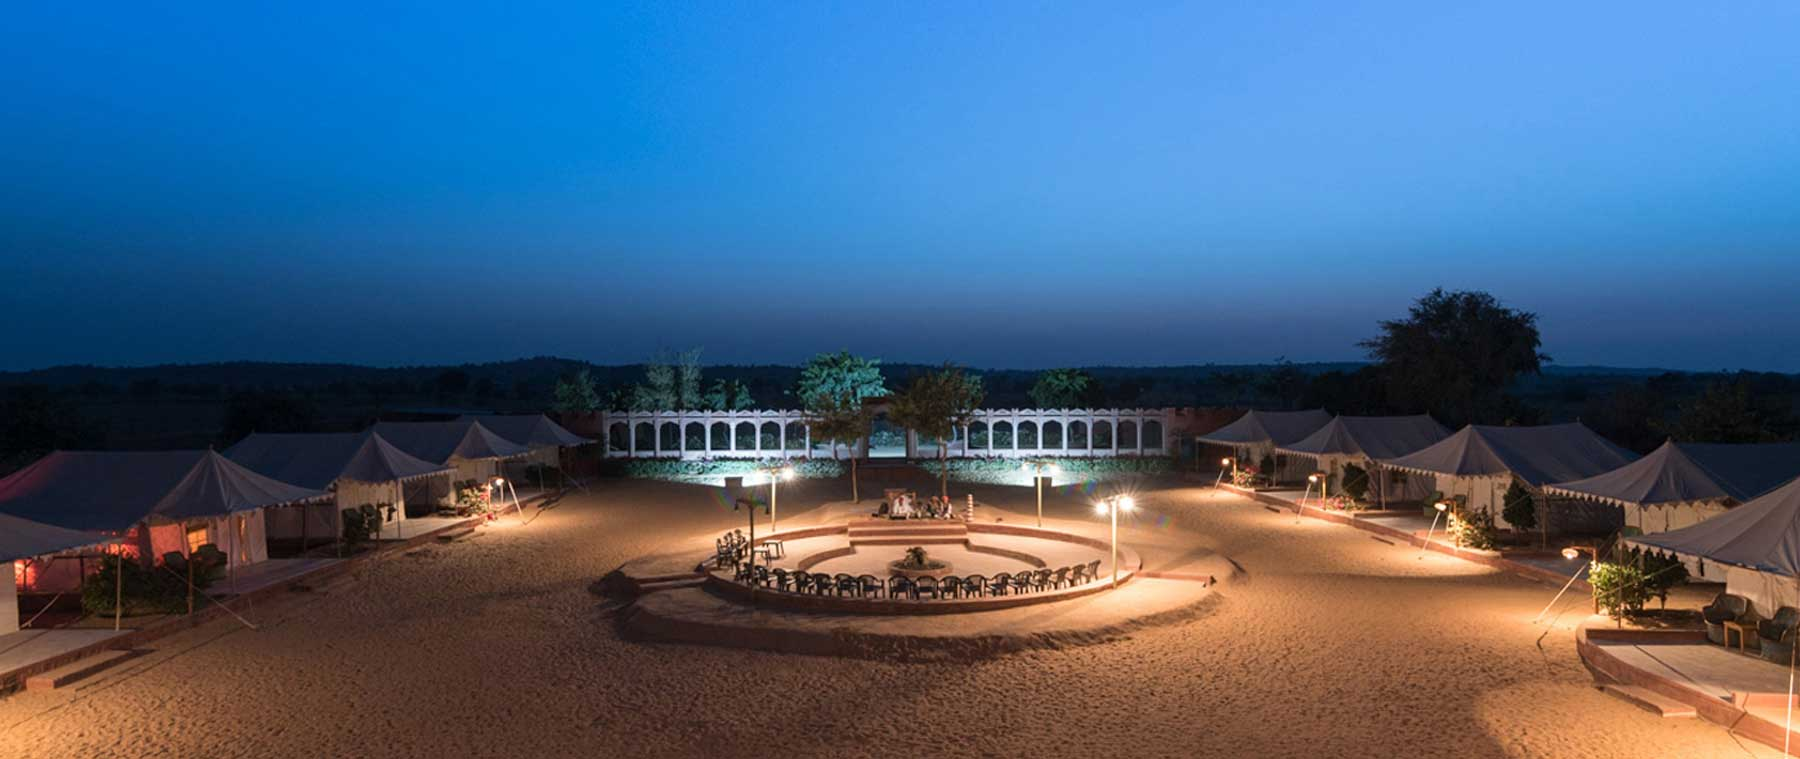 Desert Camping Jodhpur / Best Things To Do In Jodhpur